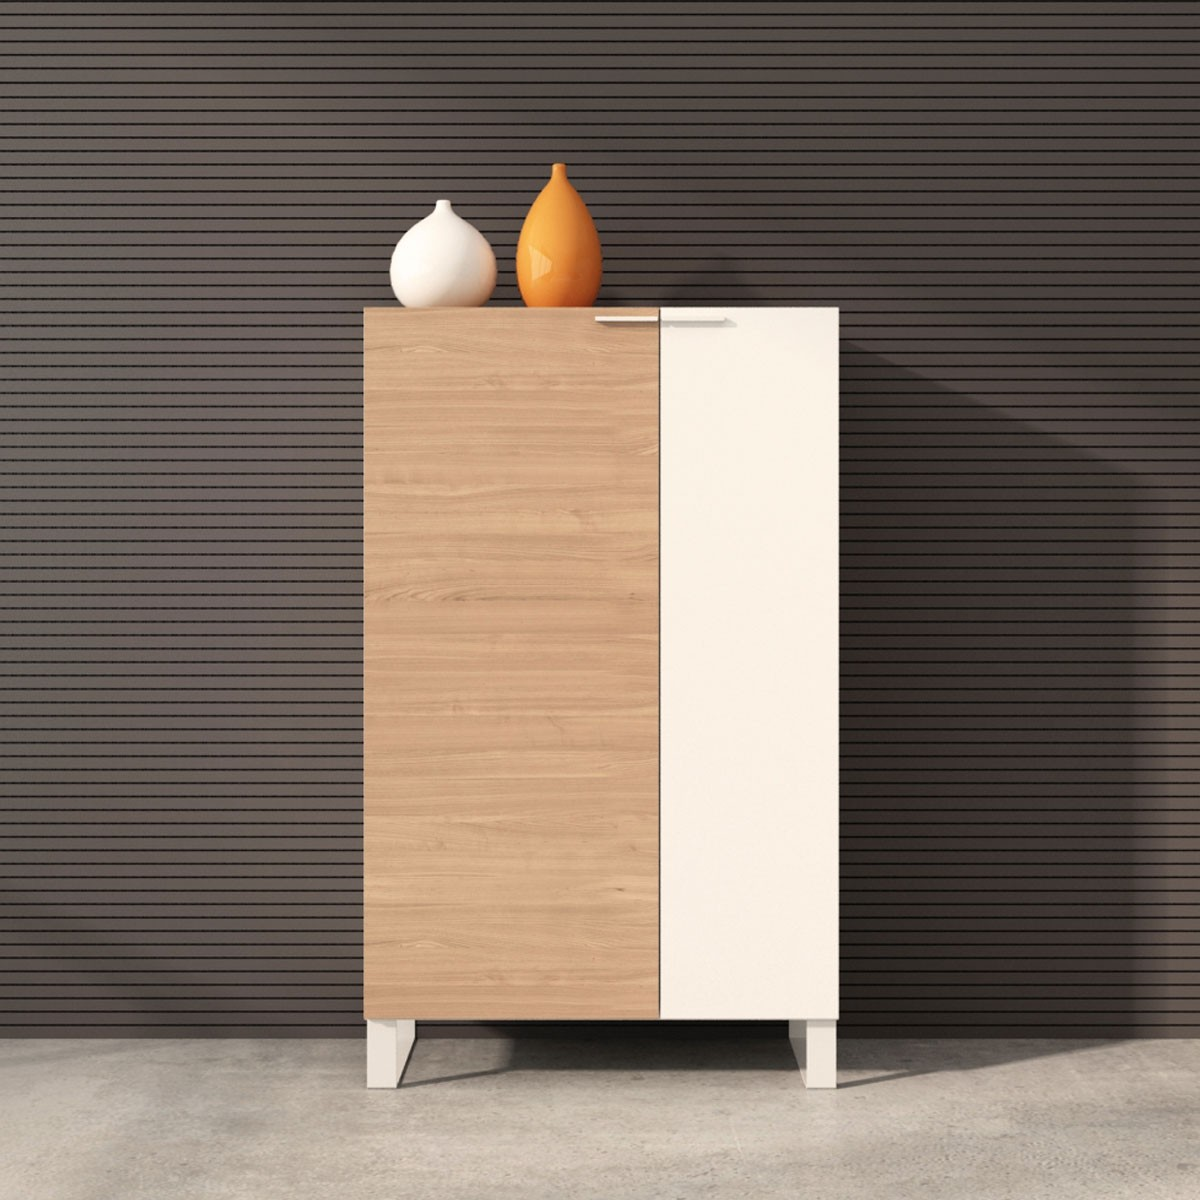 """Office Storage Cabinet 52""""H x 31.5""""W x 15.7""""D in Oak and White with 2 doors (CG22)"""